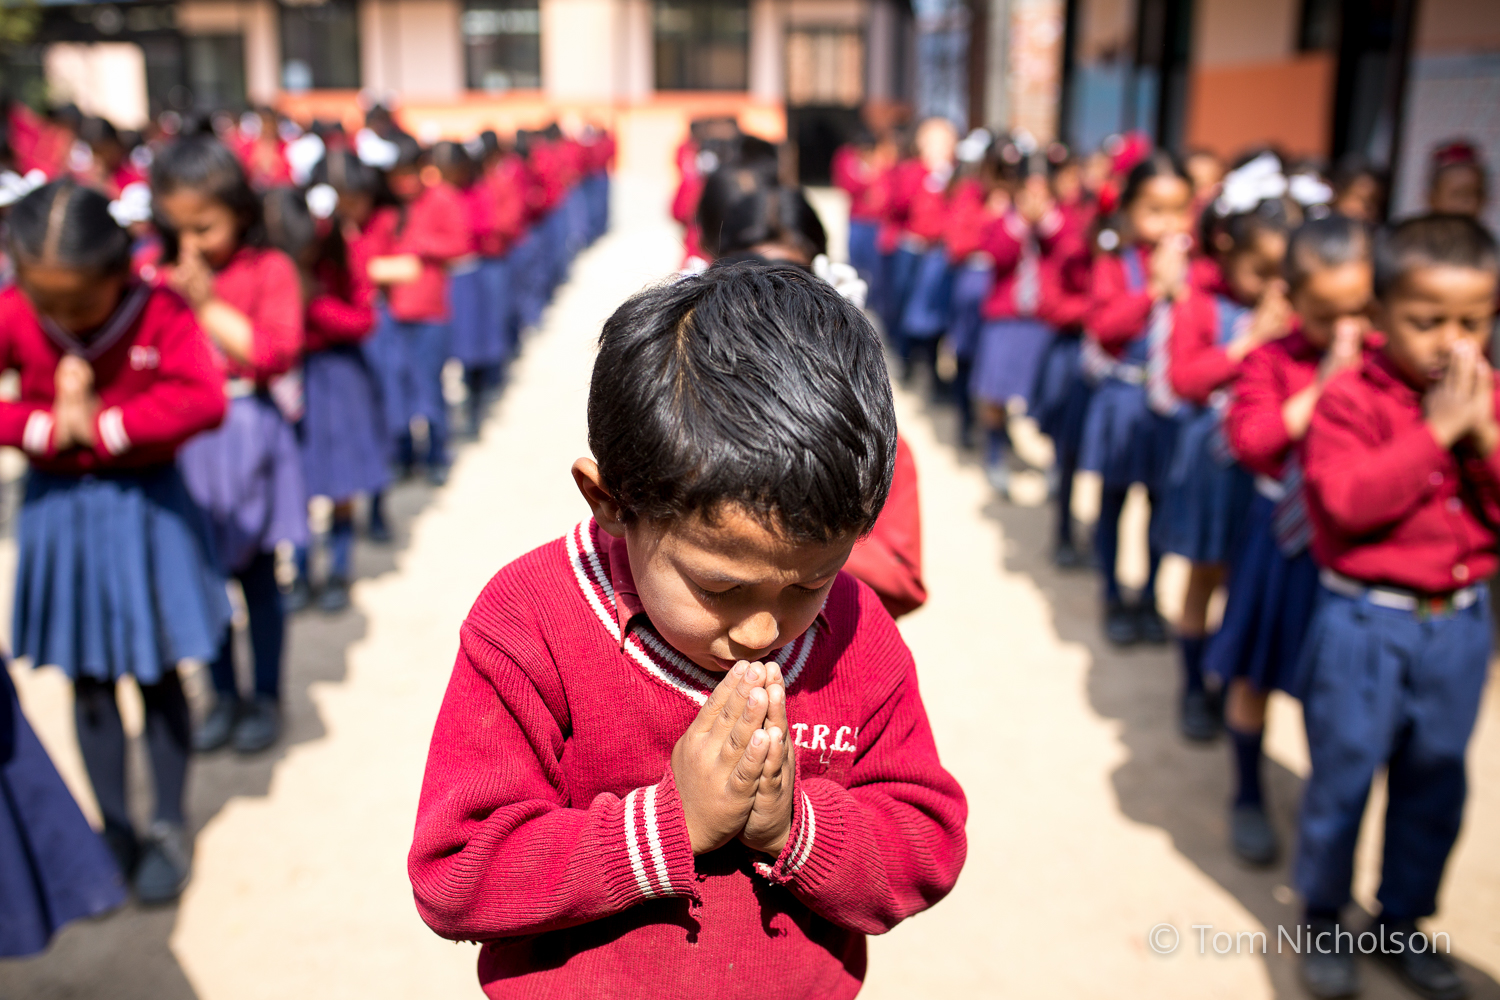 A young boy prays during assembly at the Tri Ratna Cooperative School, also known as Bungamati School in Bungamati District, Kathmandu, Nepal on 15 March 2016. The school and surrounding village were devastated in the April 2015 earthquake.